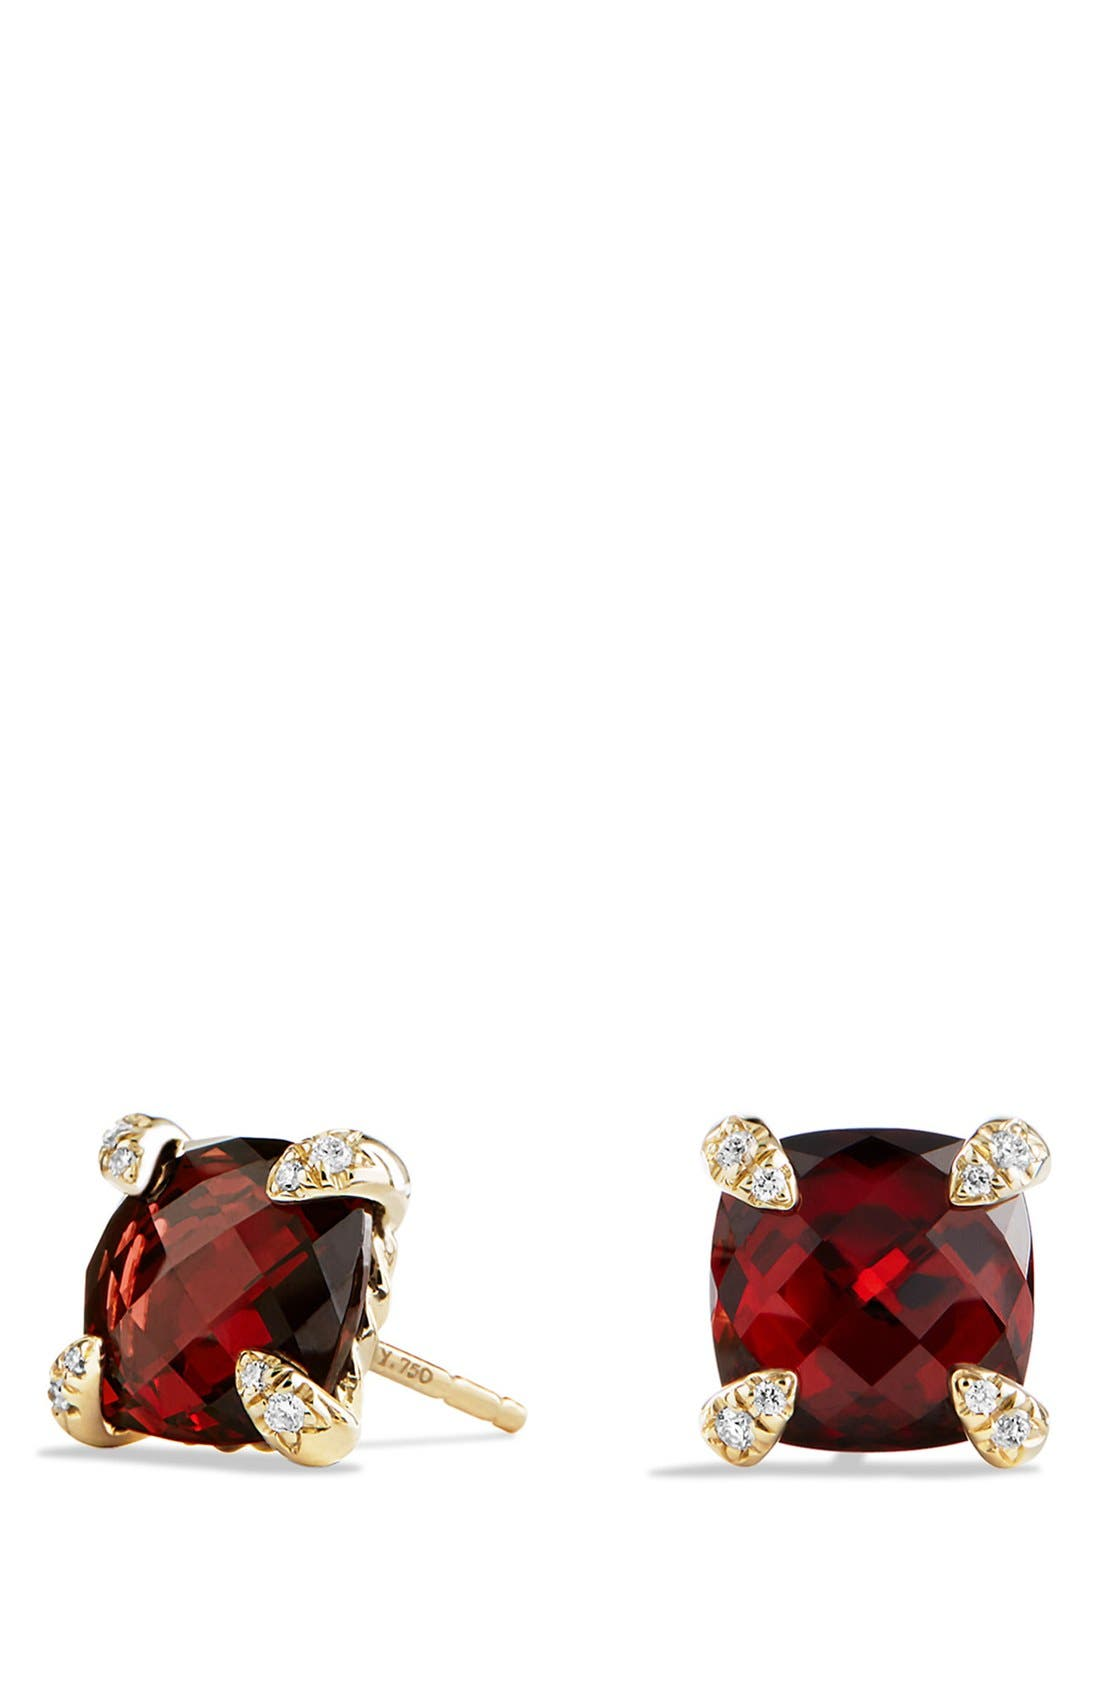 David Yurman 'Châtelaine' Earrings with Semiprecious Stones in 18K Gold